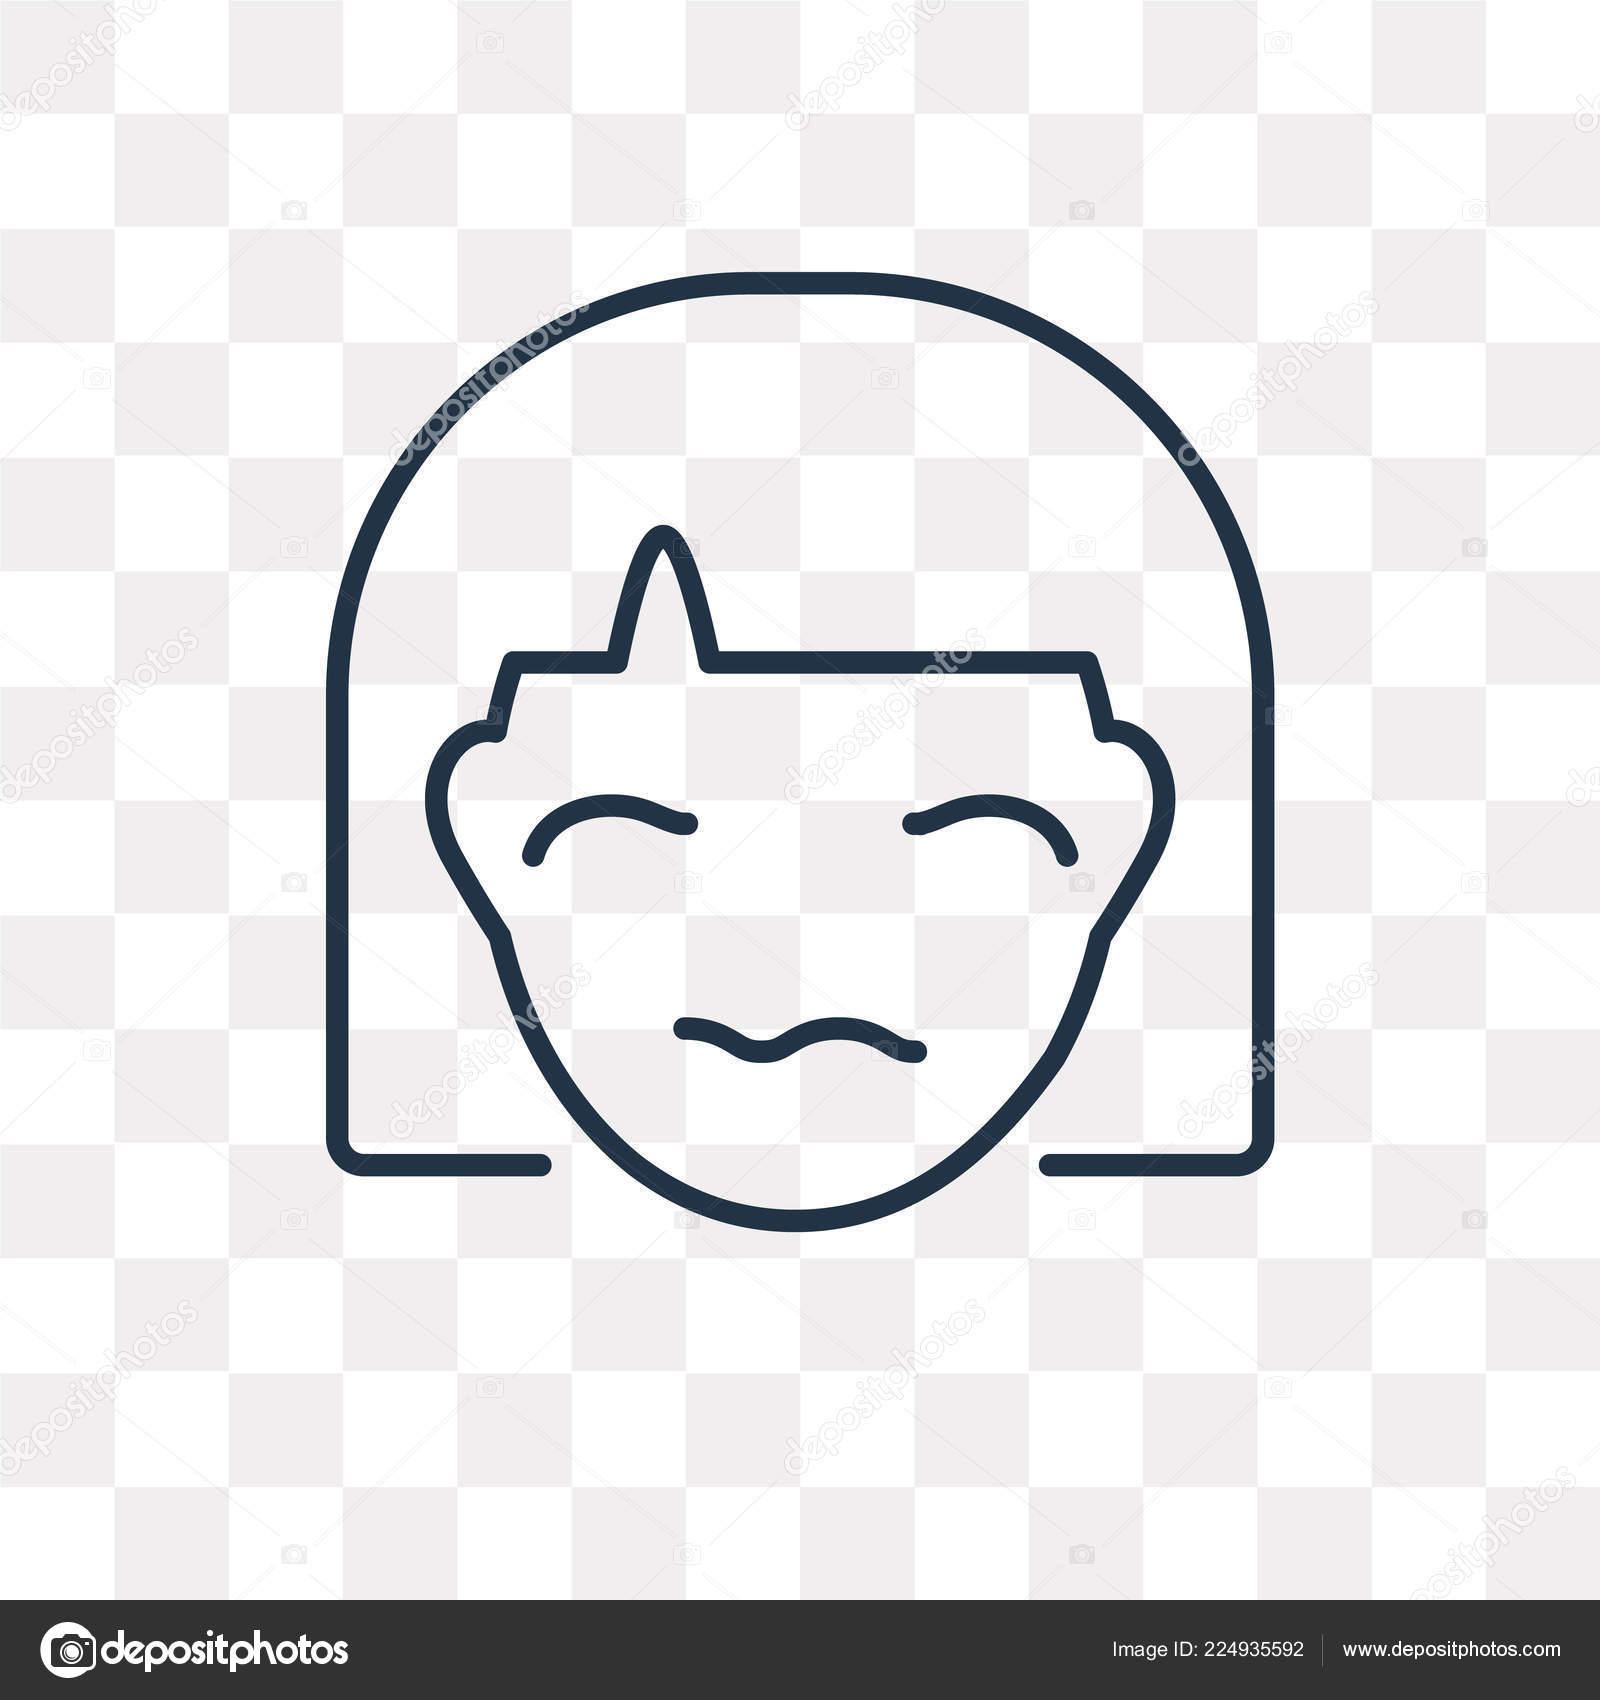 sceptic vector outline icon isolated transparent background high